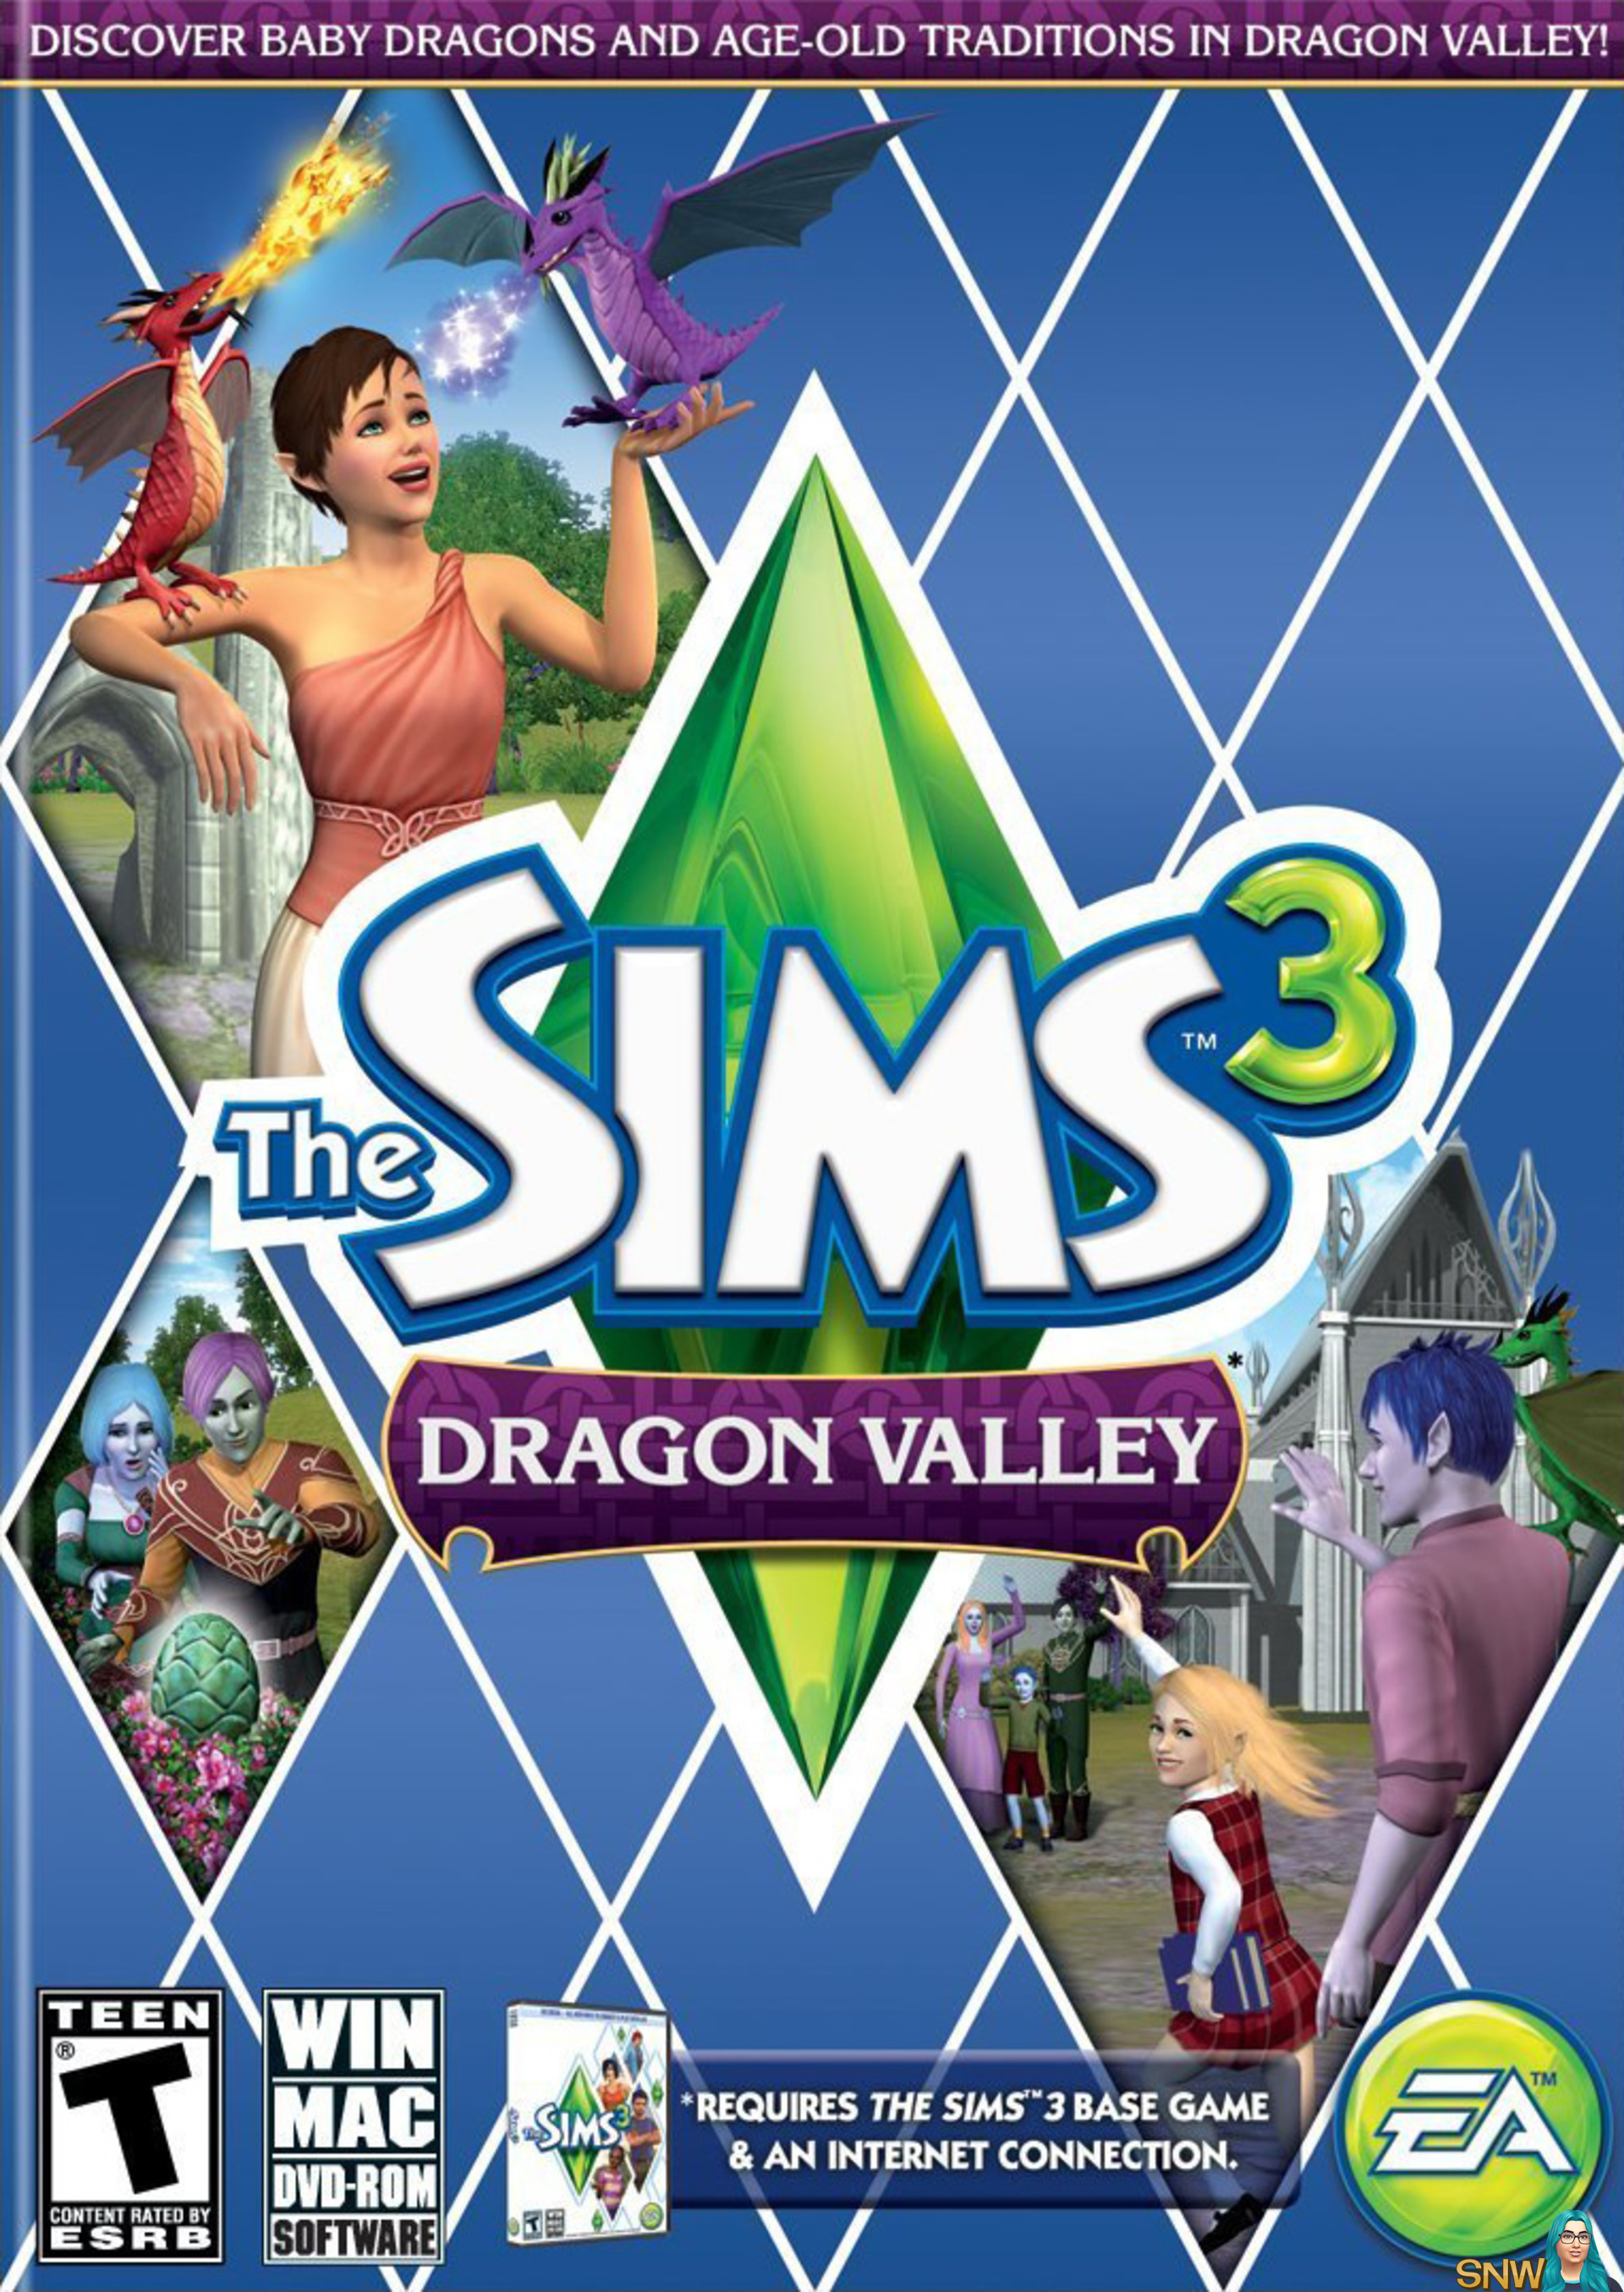 The sims 3 dragon valley snw for Case the sims 3 arredate